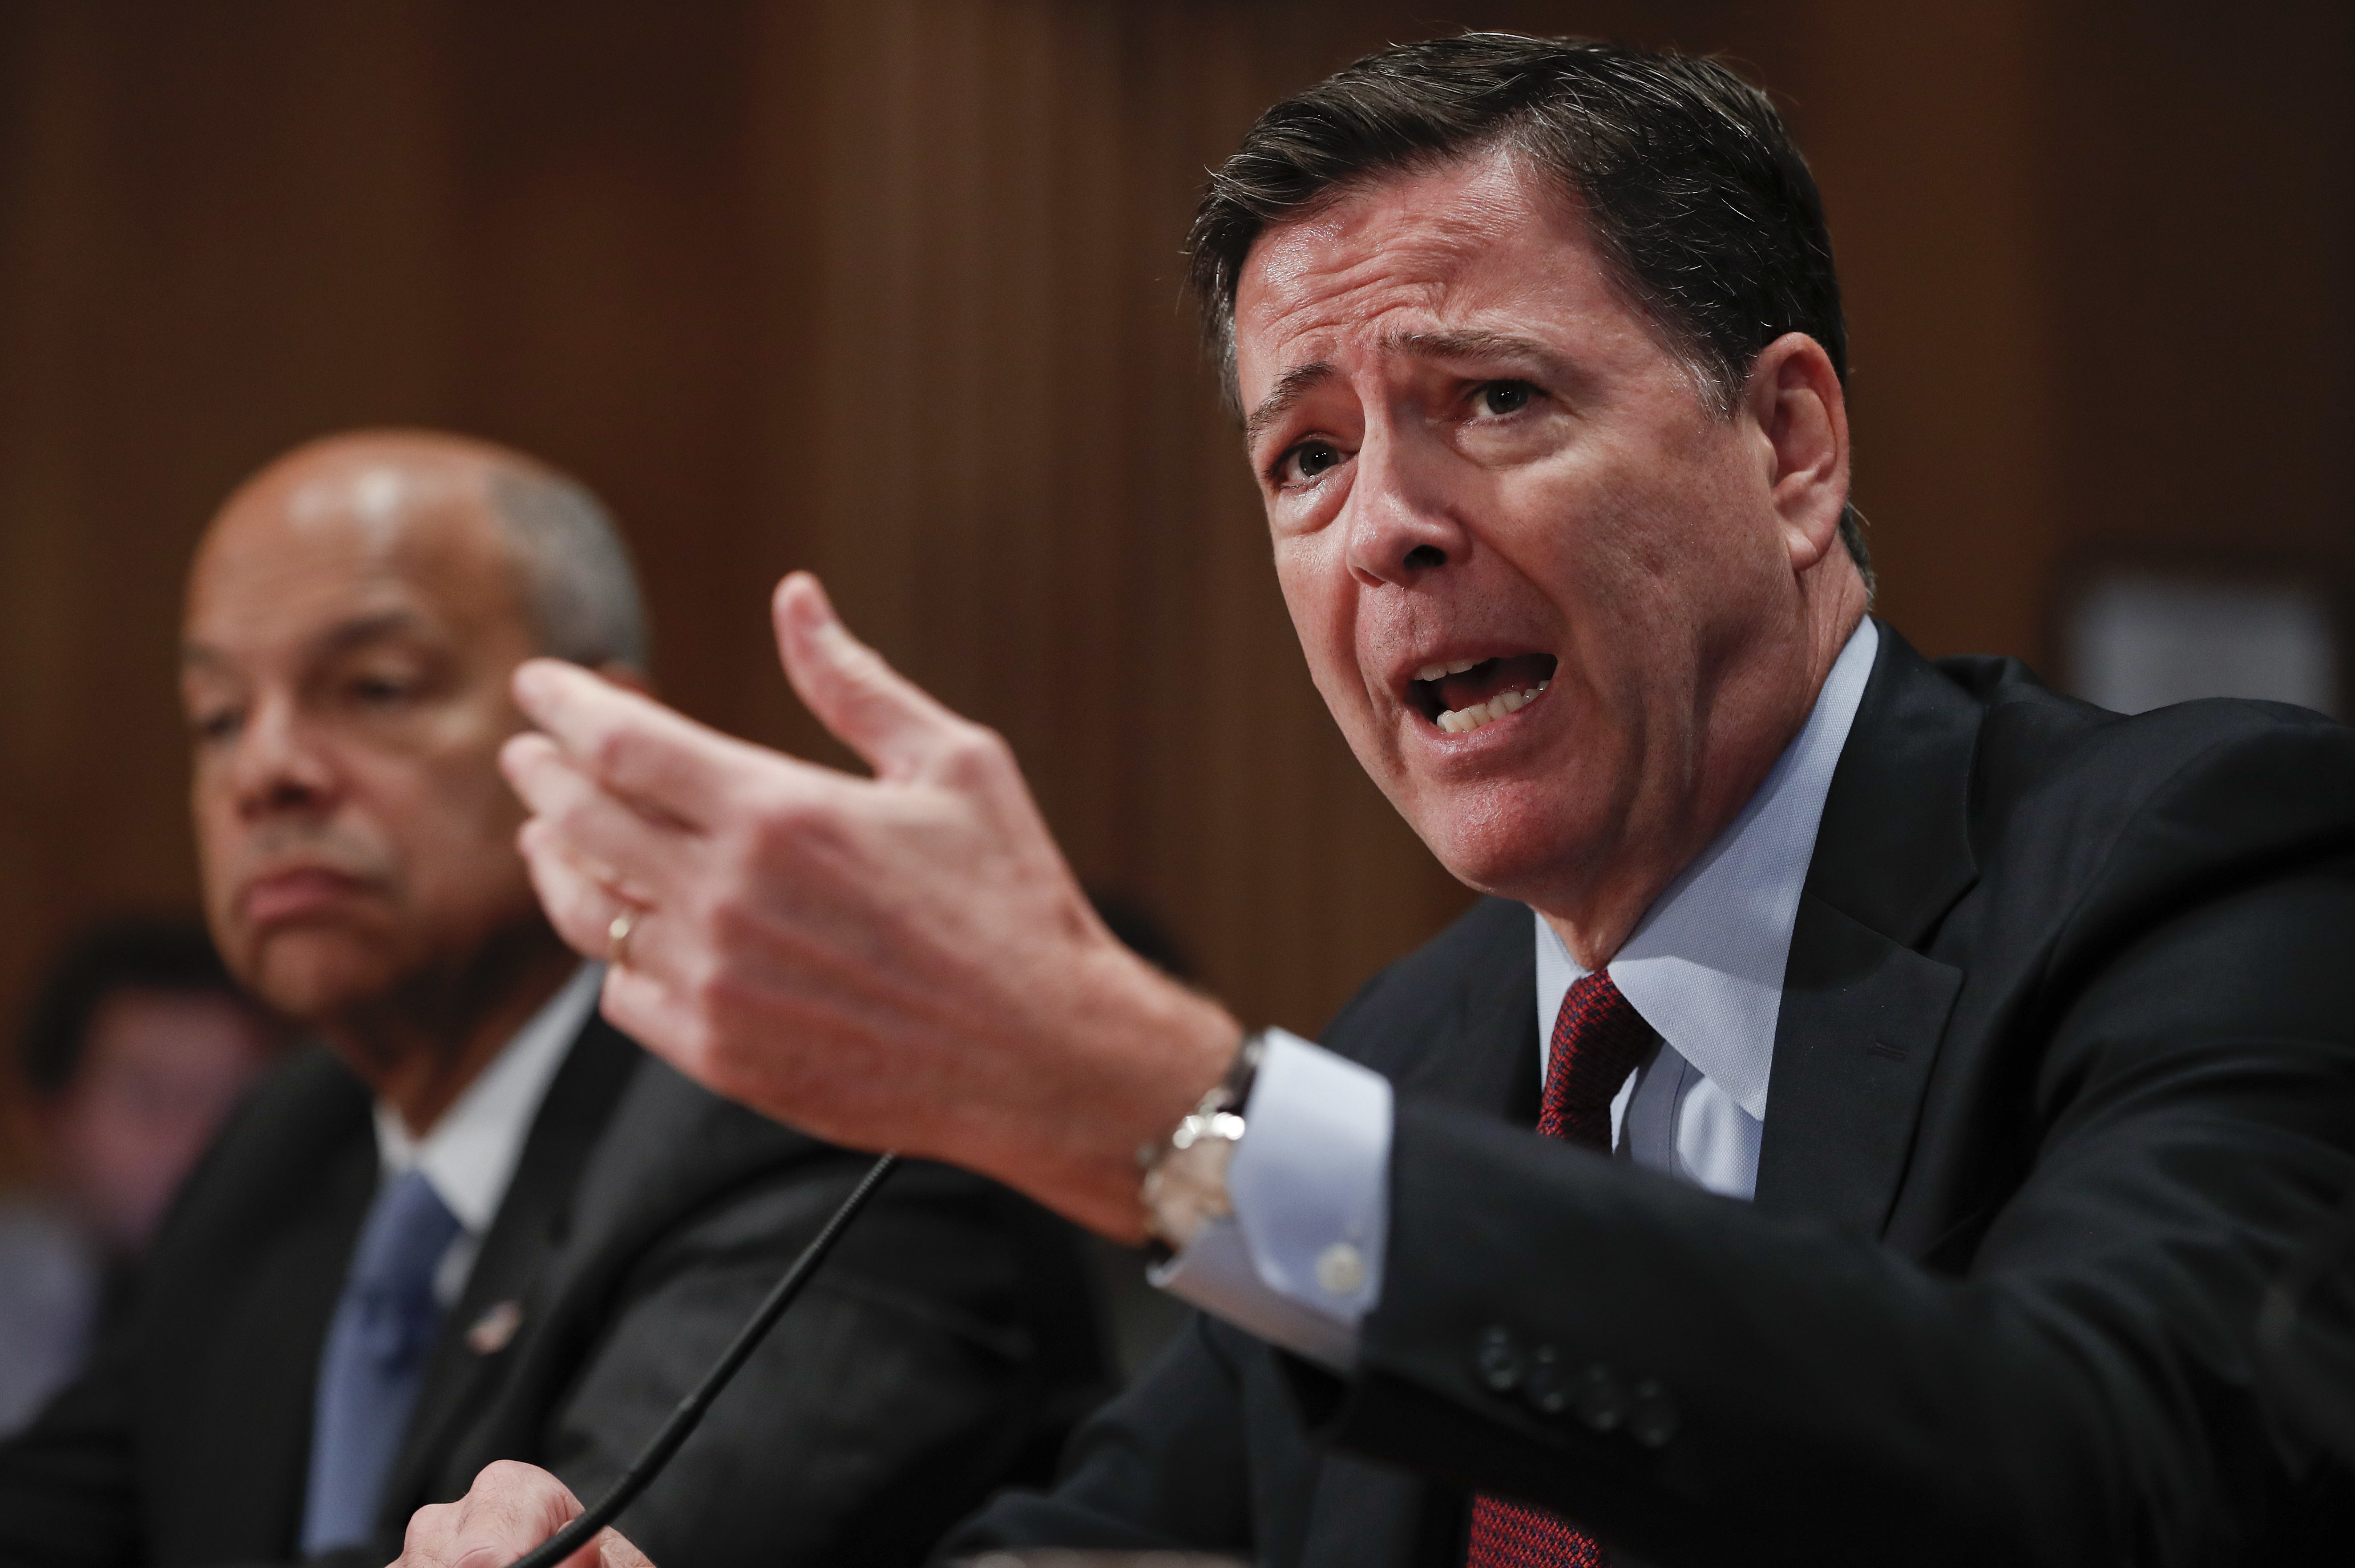 Katie phang attorney wikipedia images - James Comey Fbi Director Rejects Calls To Reopen Clinton Email Case Washington Times